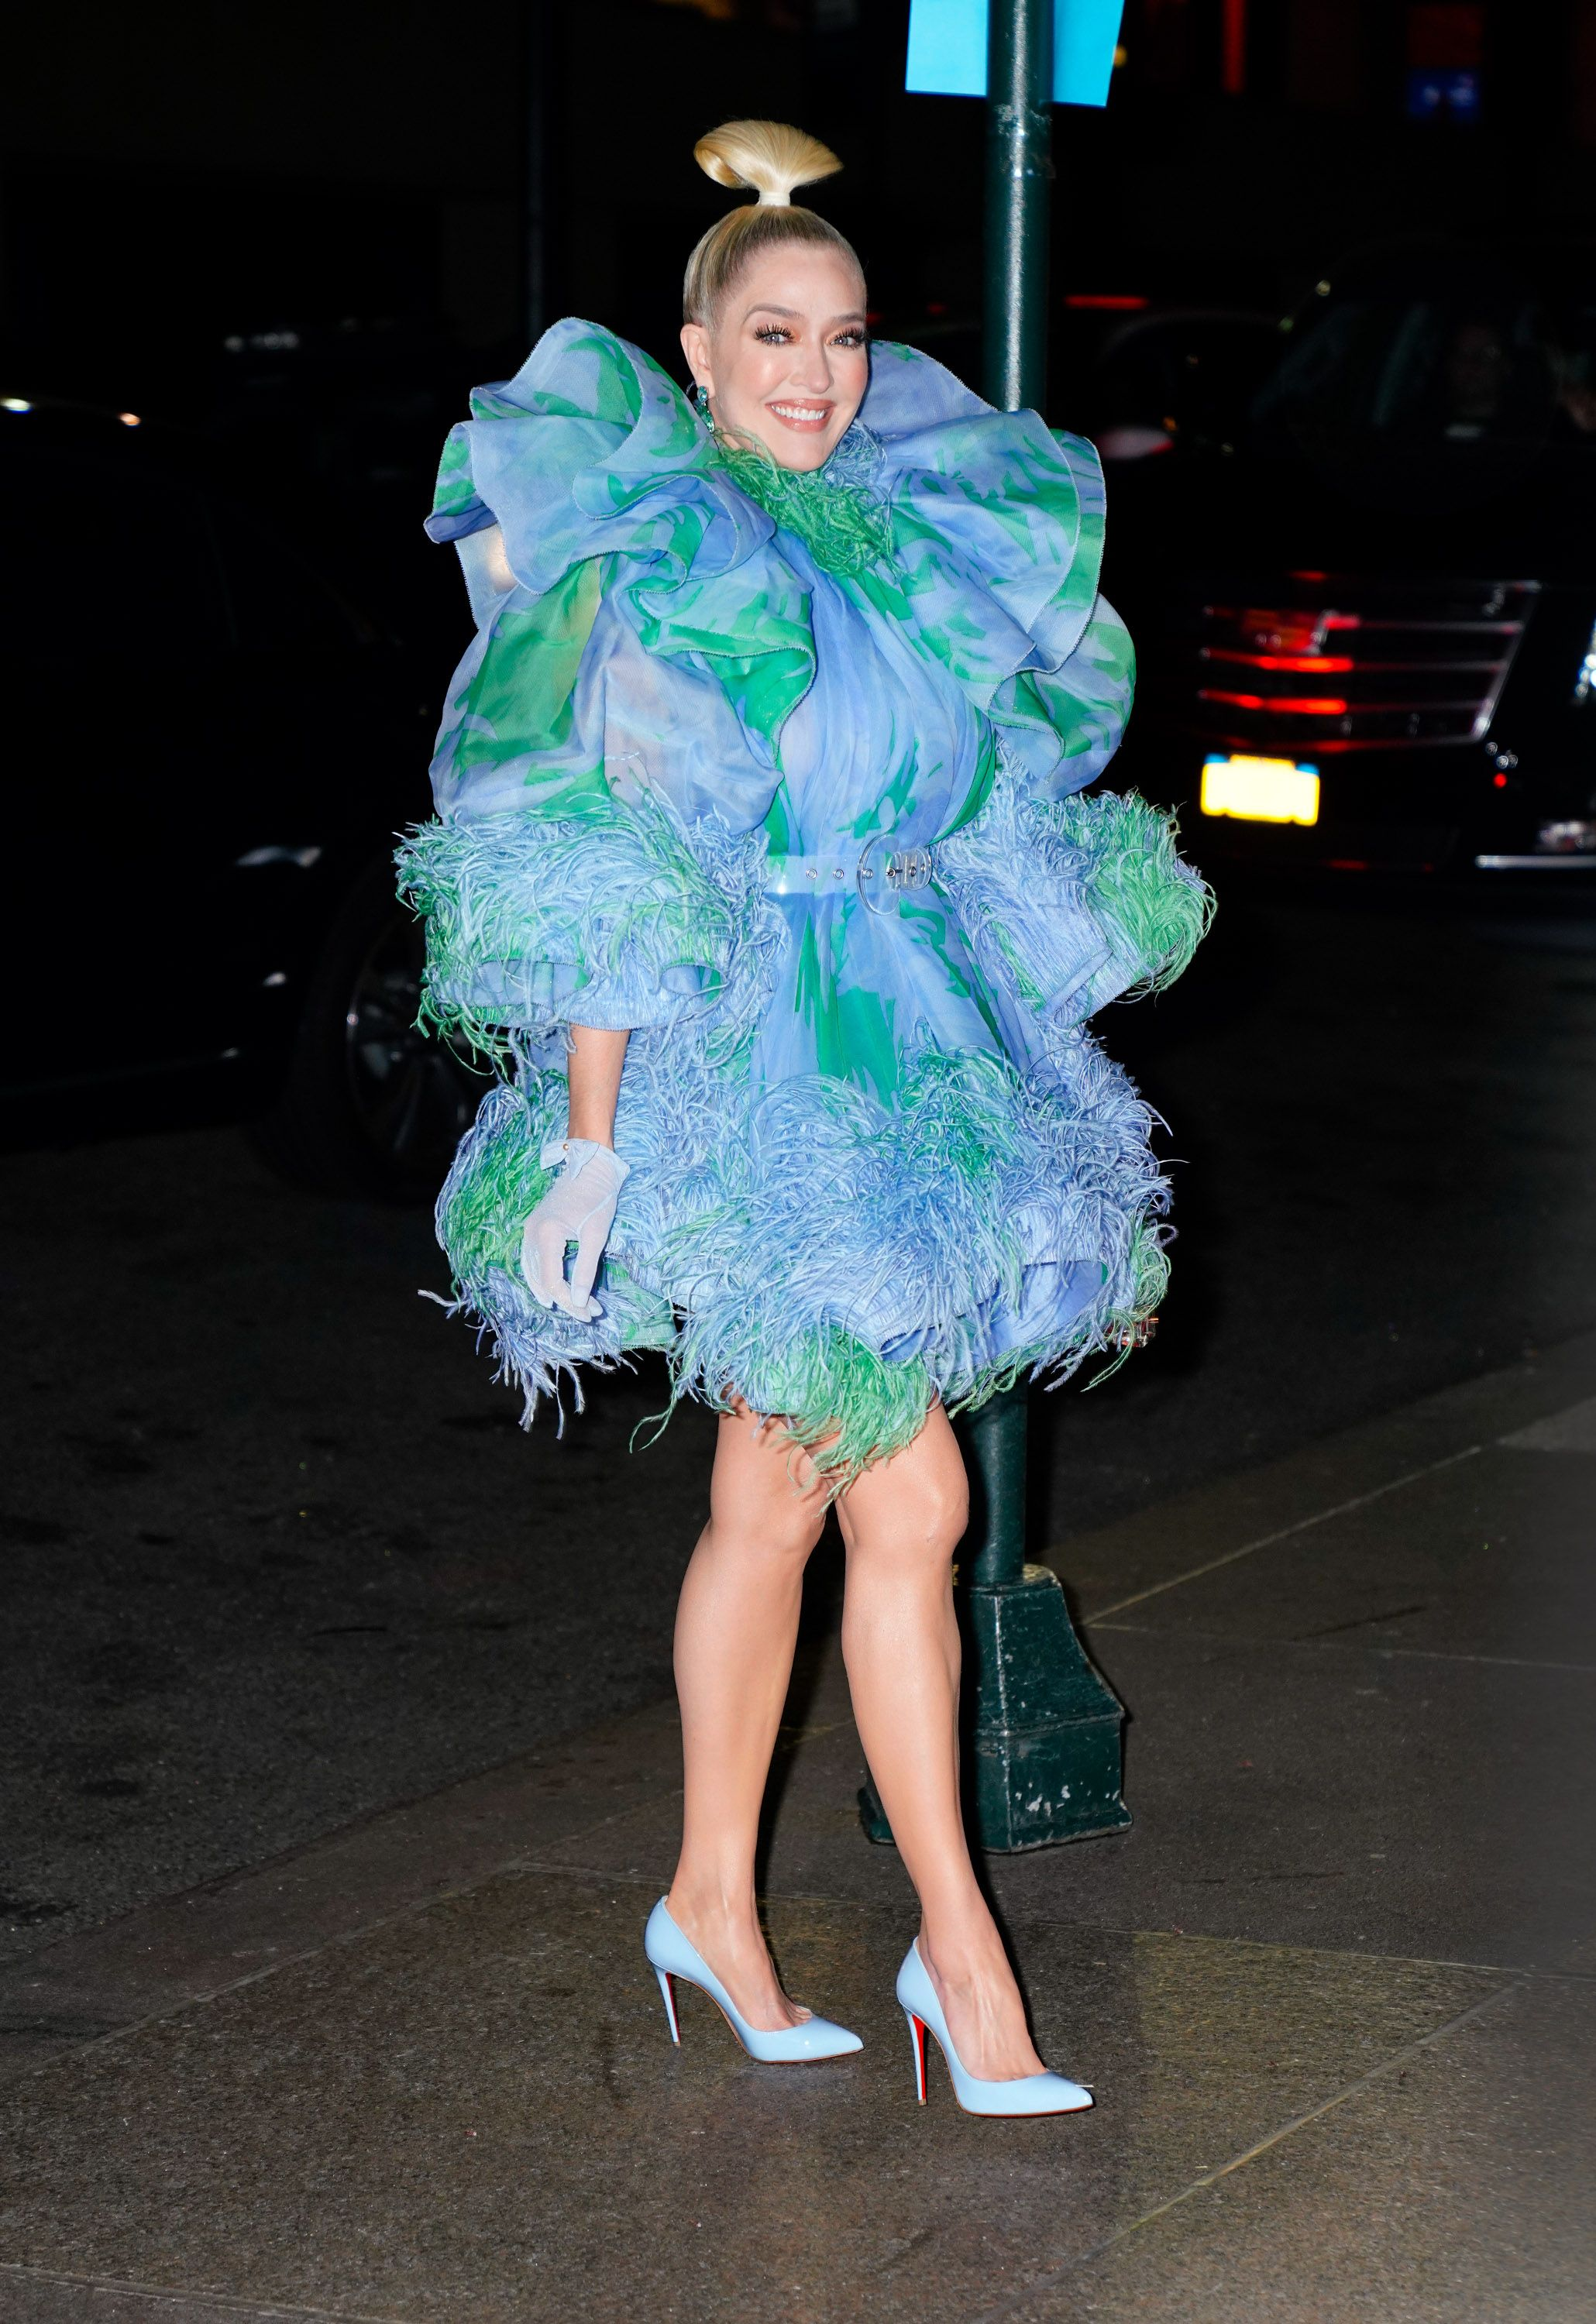 The reality star wore a striking blue and green puffy dress.